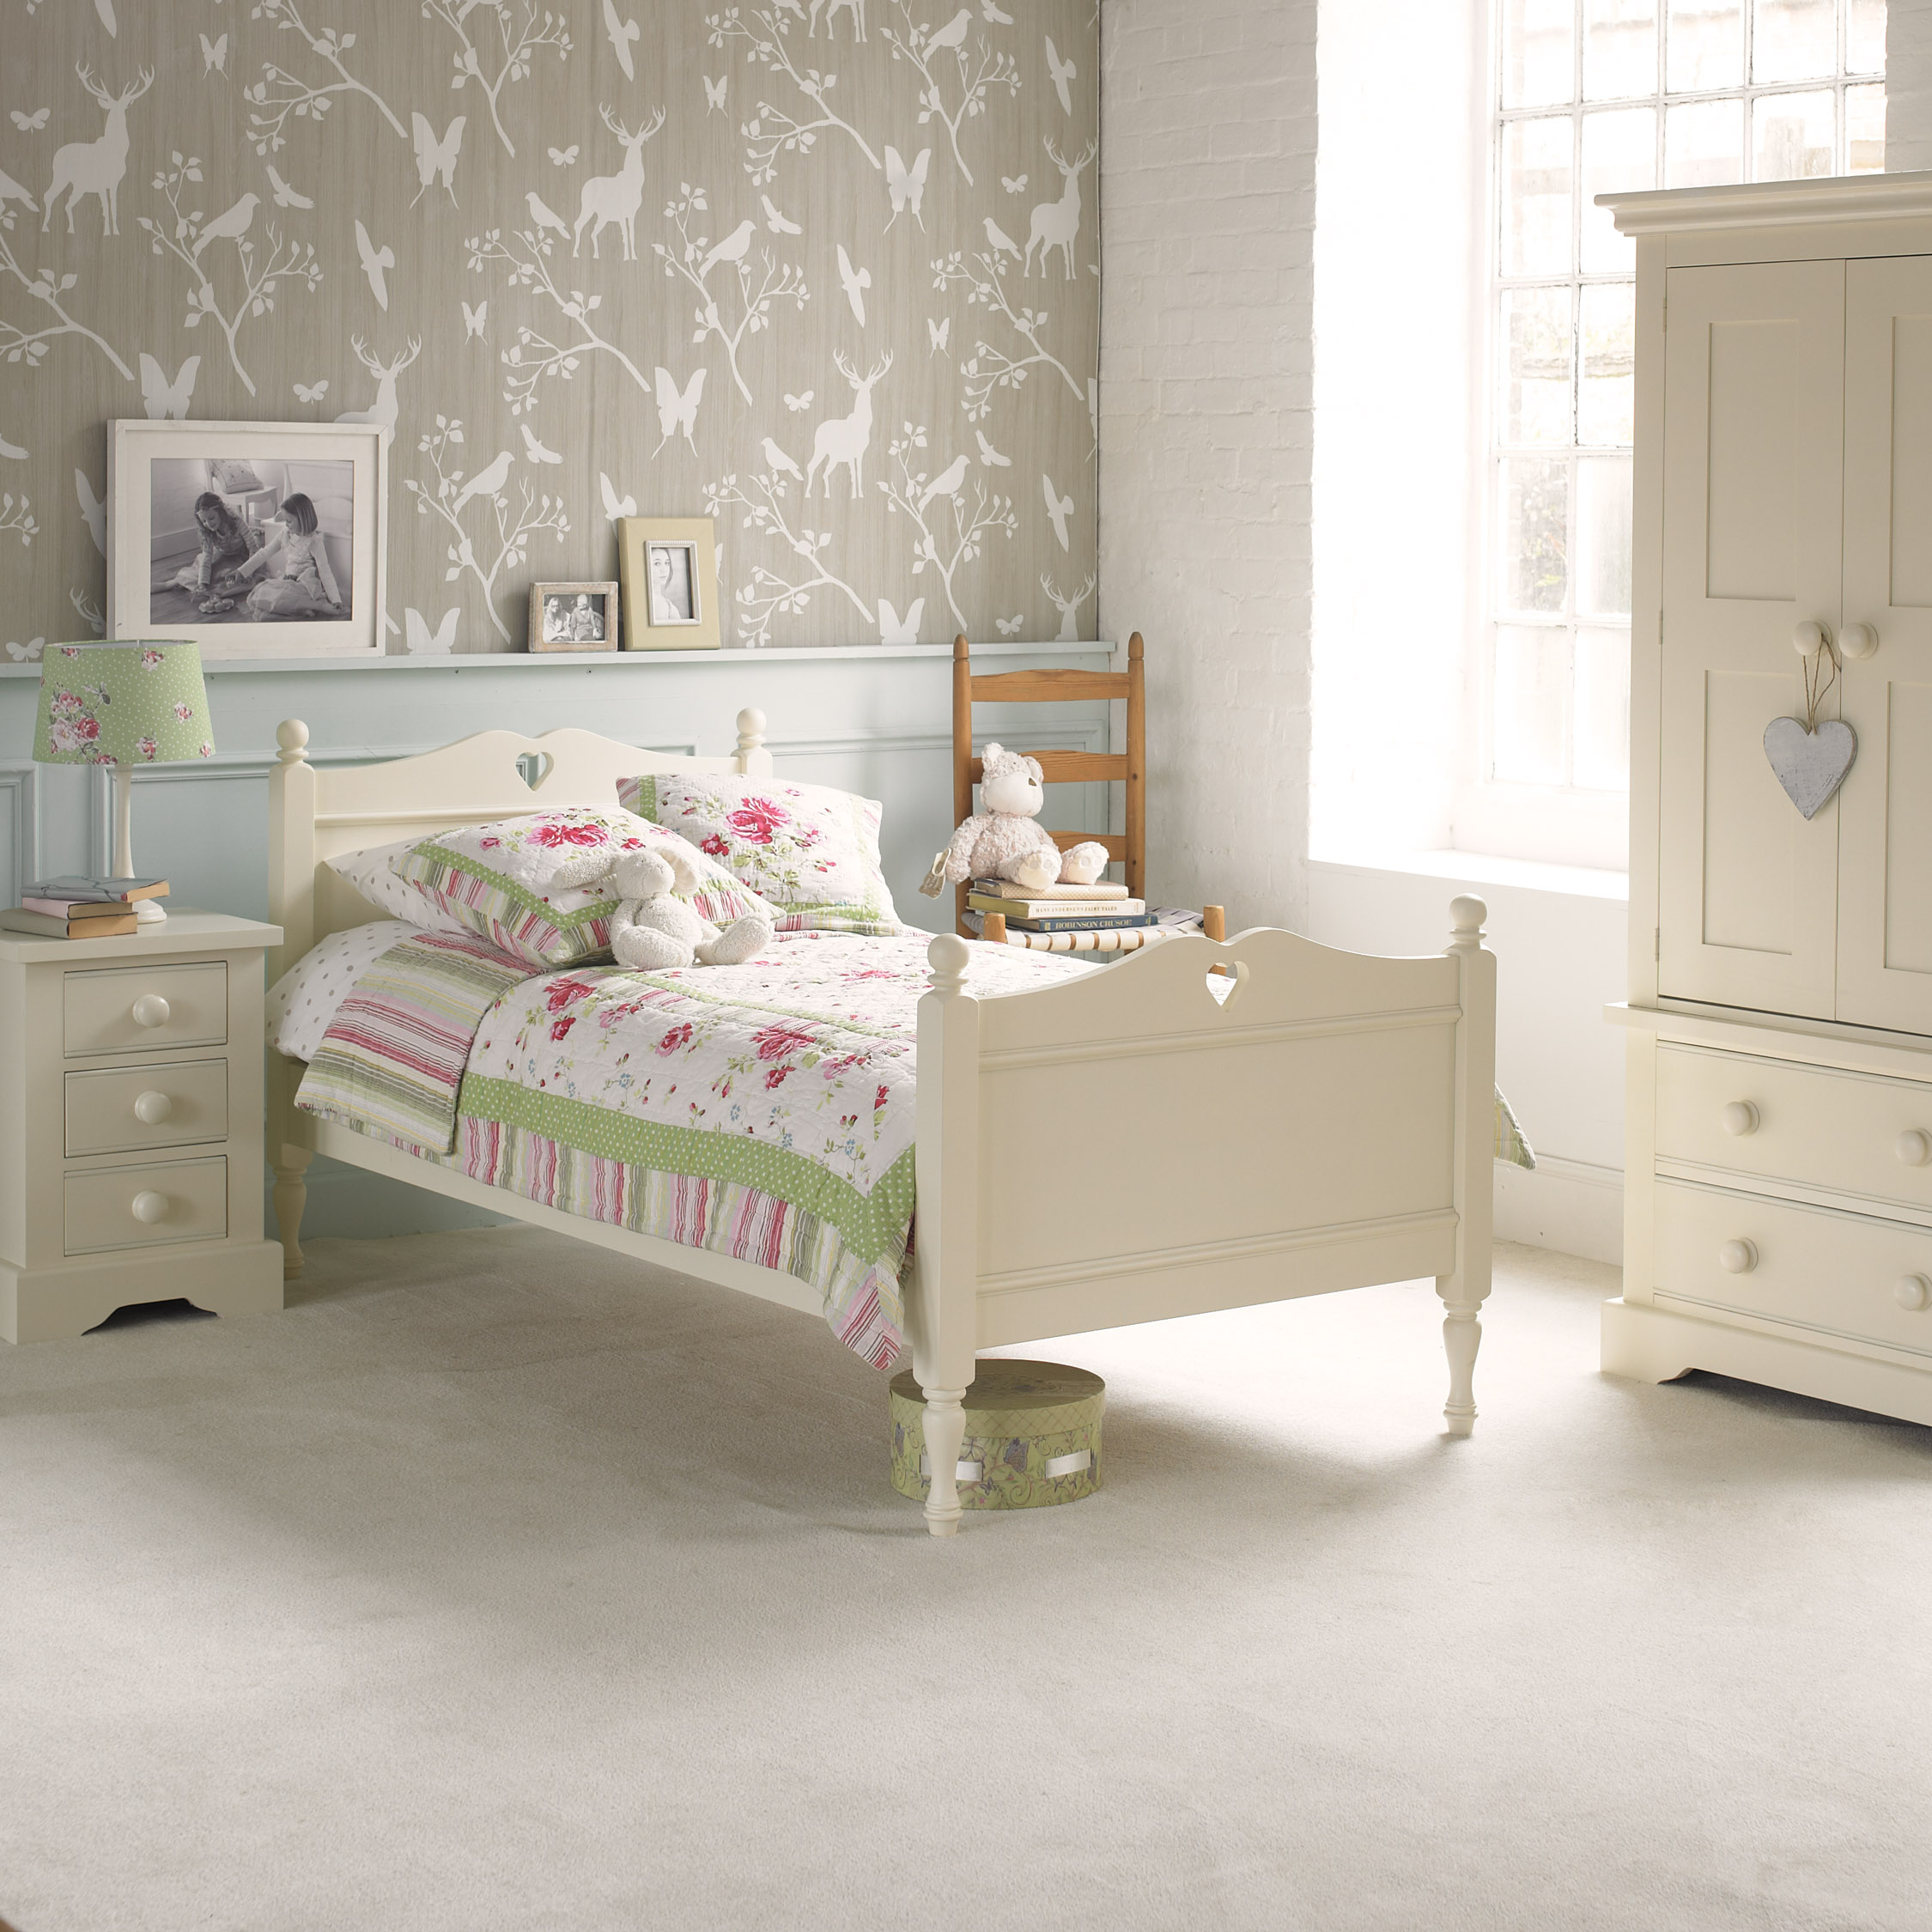 Heart bed ivory white by little folks for children - White heart bedroom furniture ...